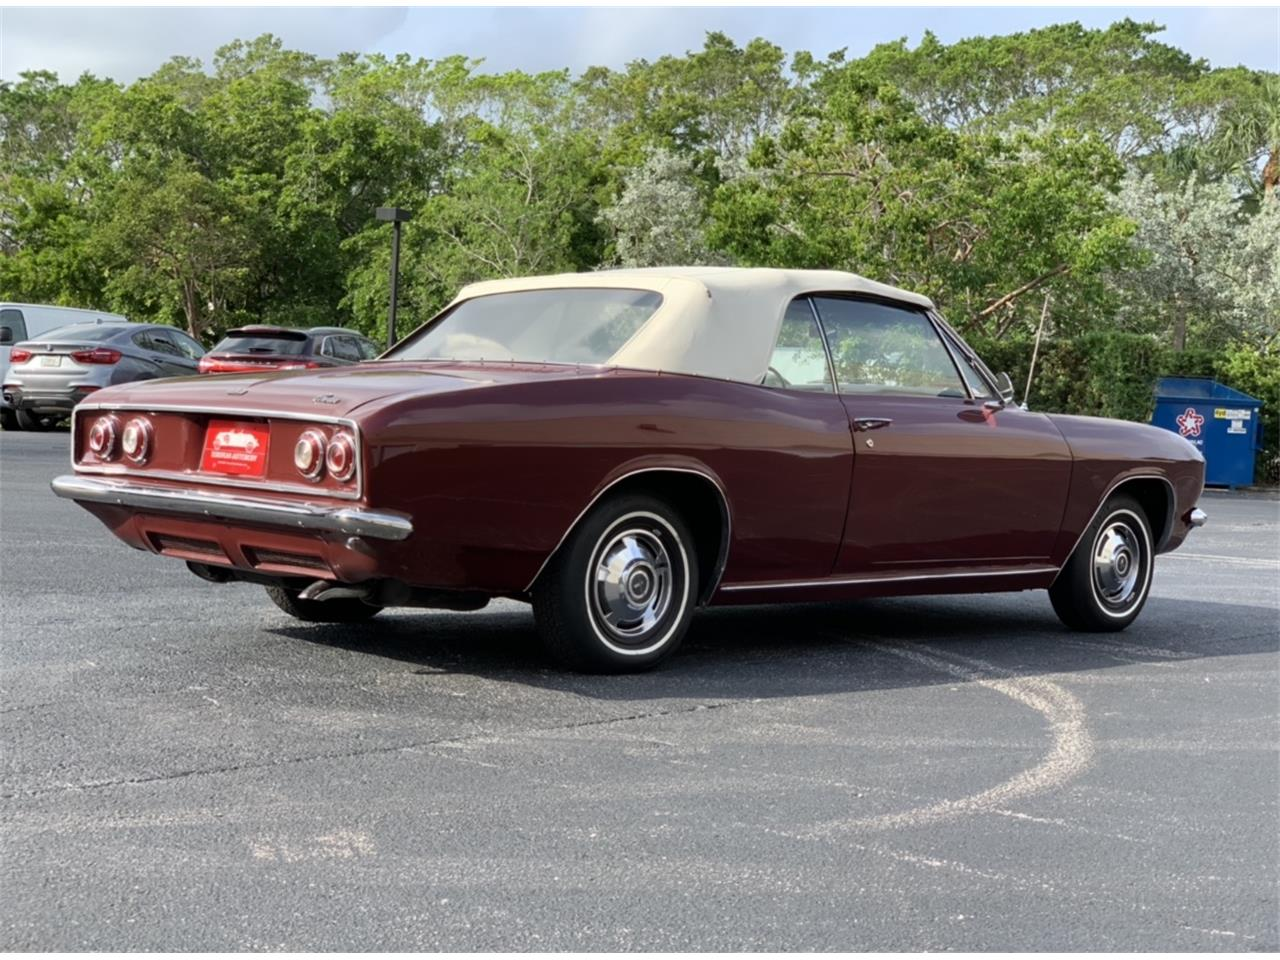 Large Picture of 1965 Corvair - $16,900.00 Offered by European Autobody, Inc. - PFHX